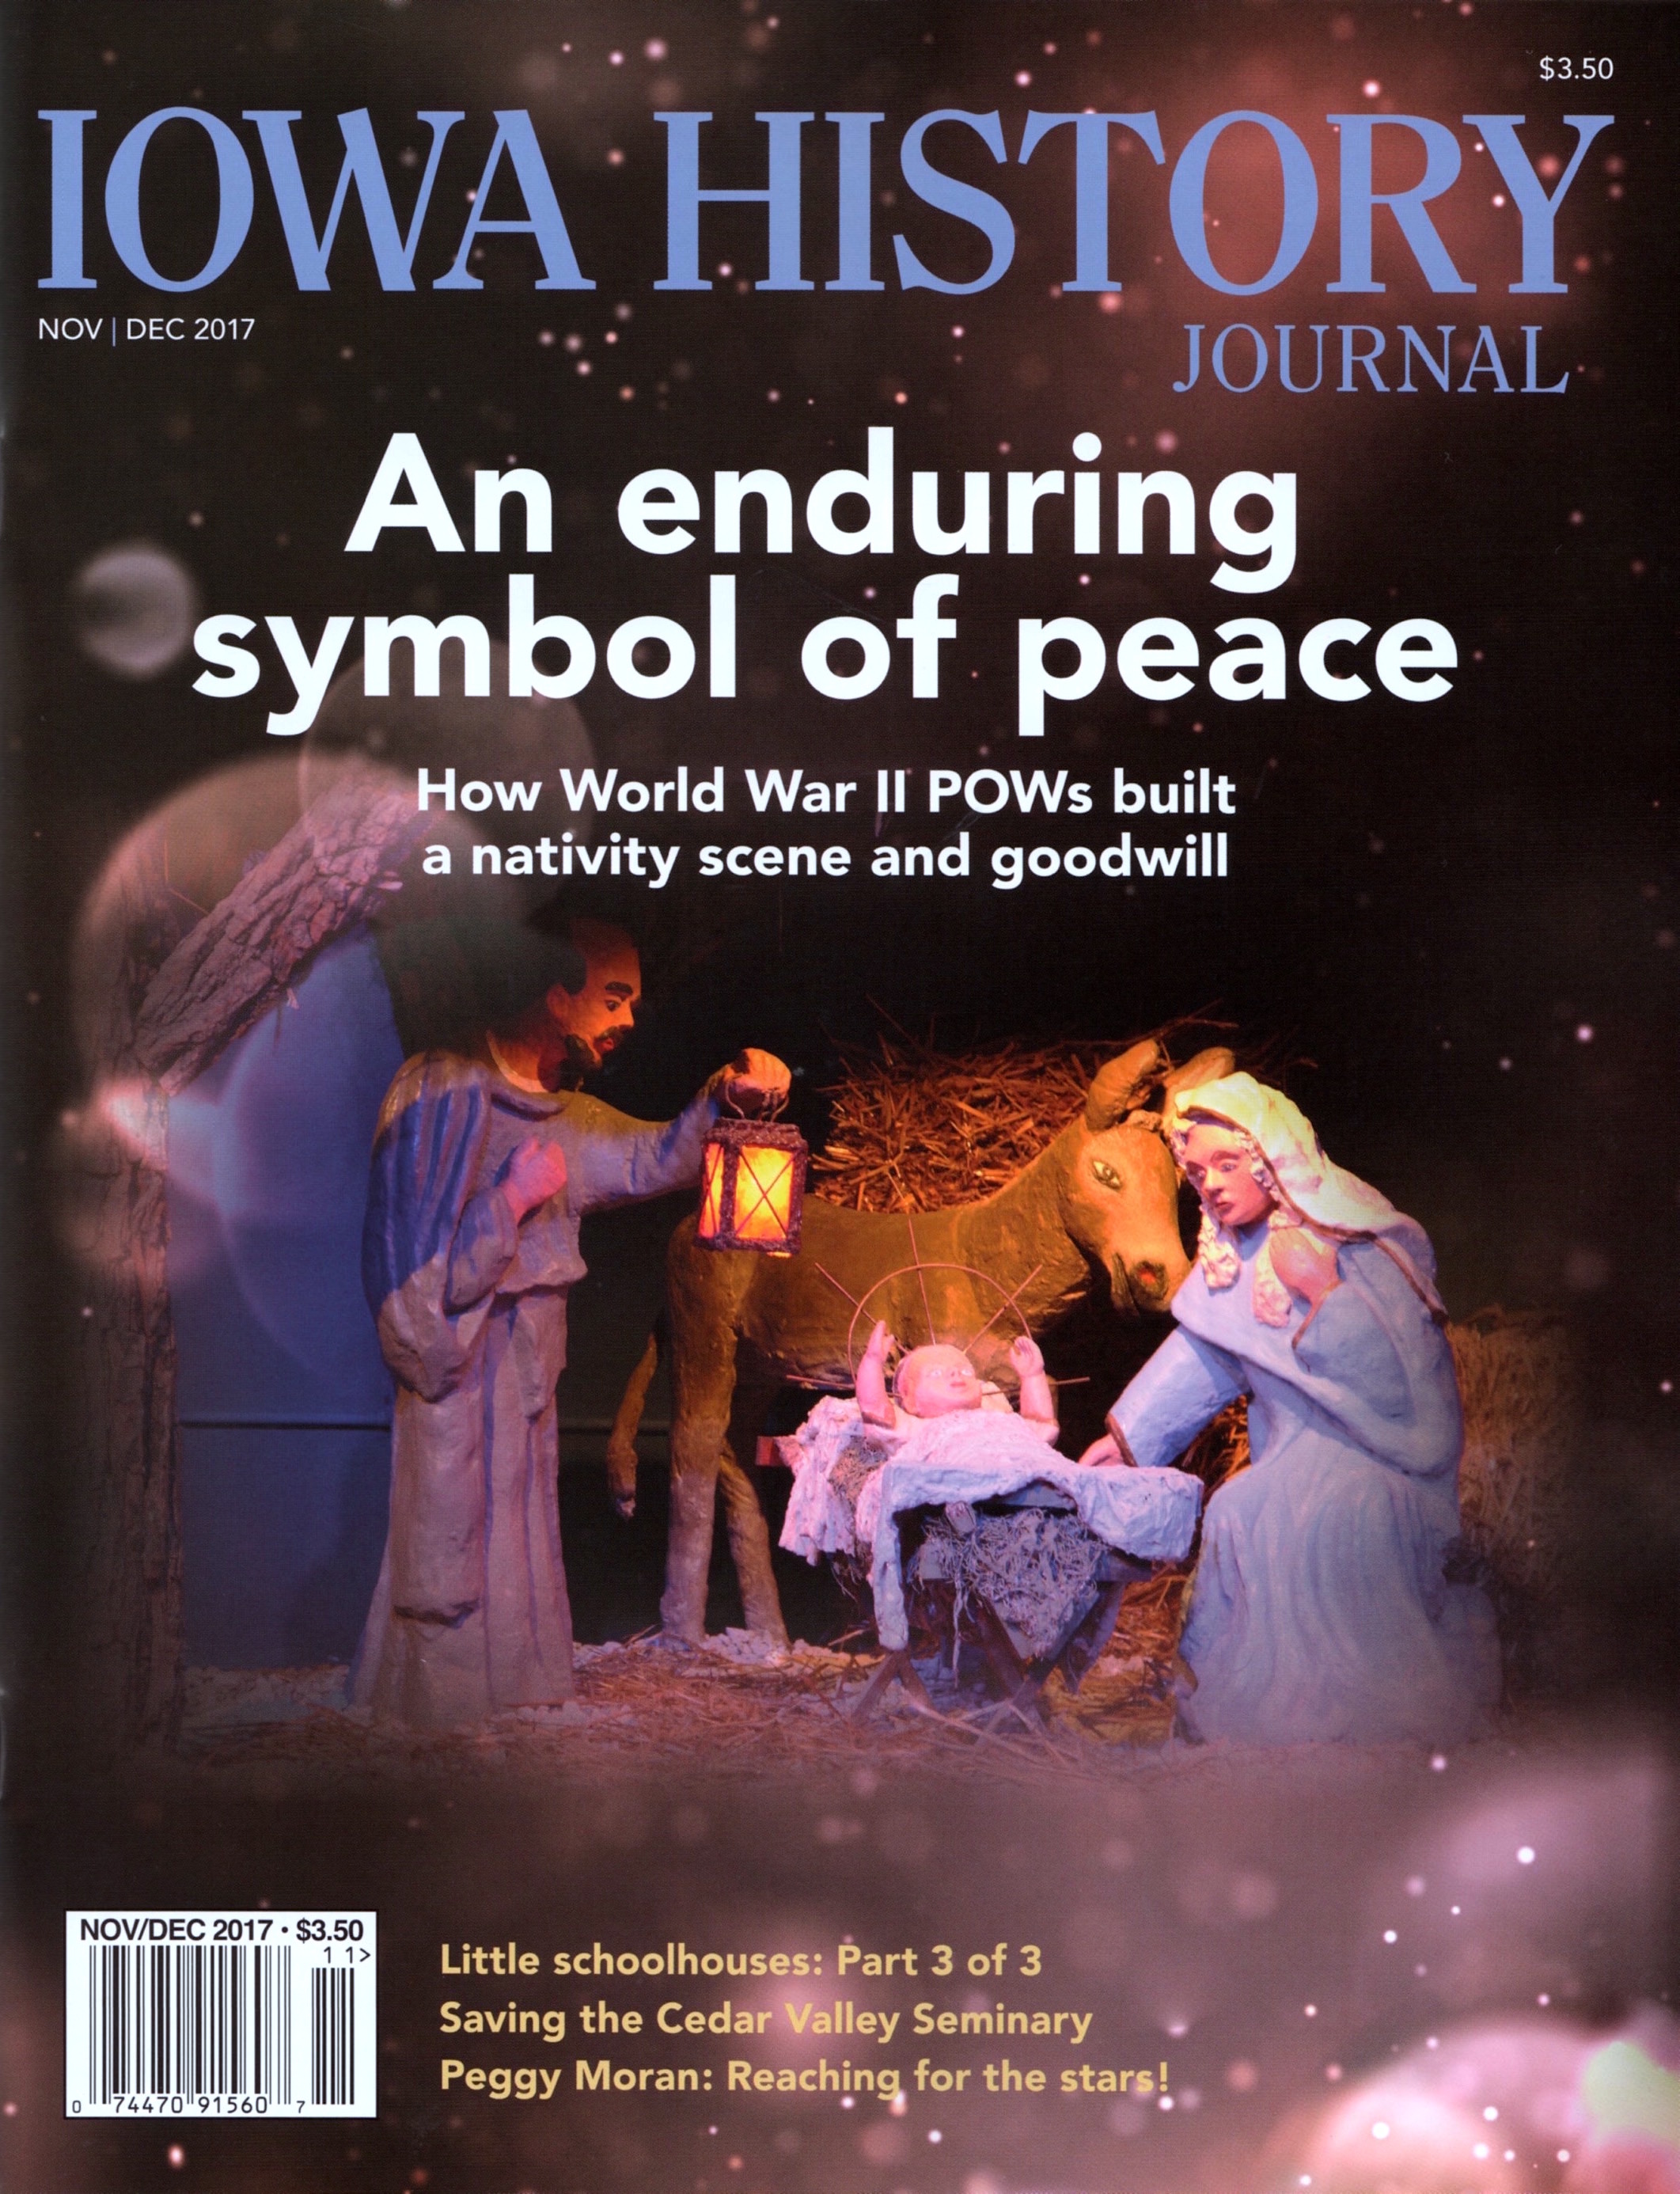 Current Issue: Volume 9, Issue 6 - Enduring symbol of peace